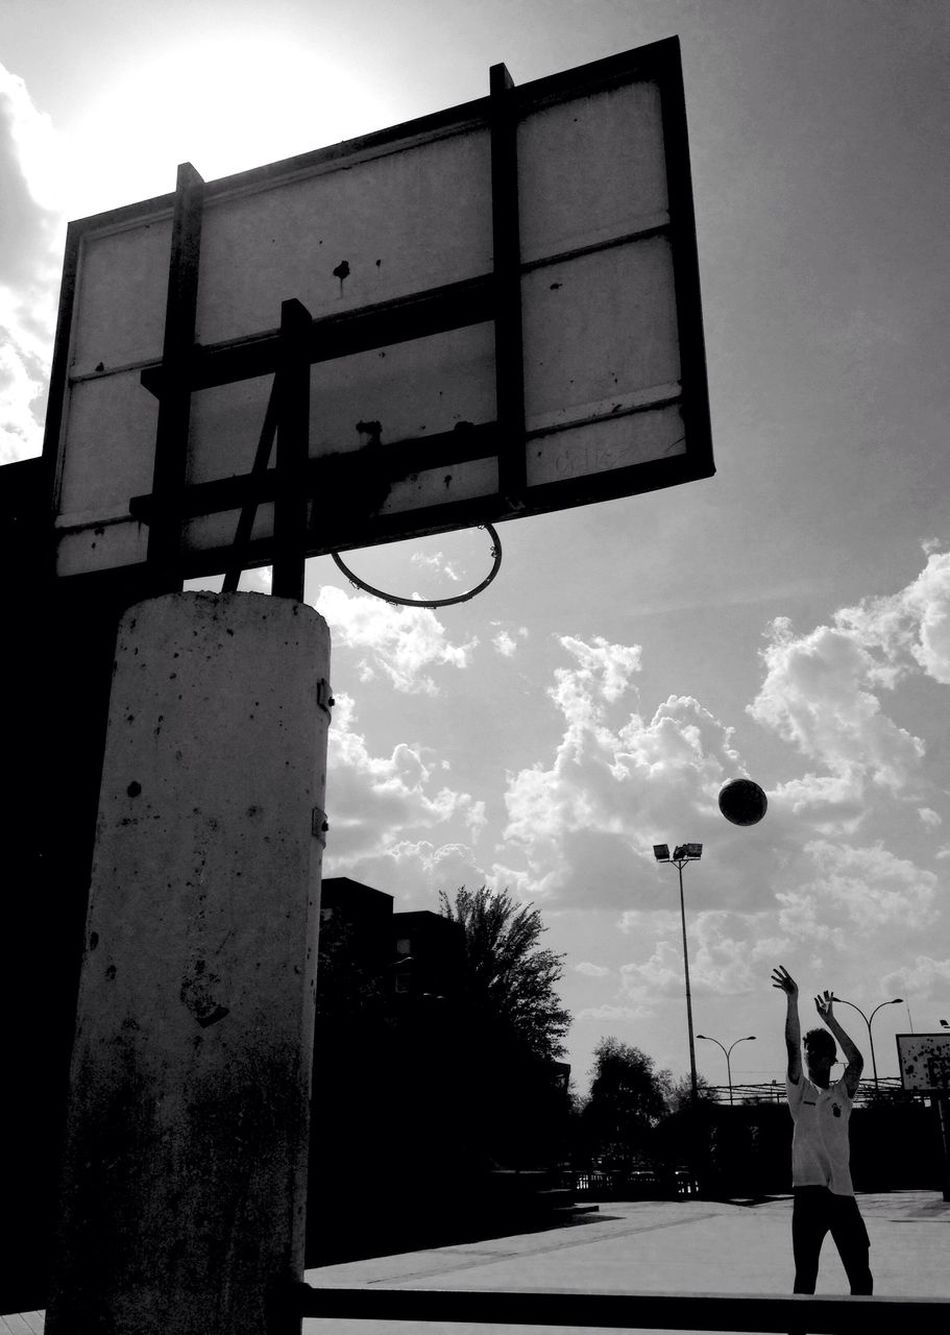 Basketball Hoop Cloud - Sky Sky Basketball - Sport Basketball Low Angle View Real People Outdoors One Person Day Leisure Activity Court Playing Silhouette Men Ball Basketball Player Building Exterior Road Sign